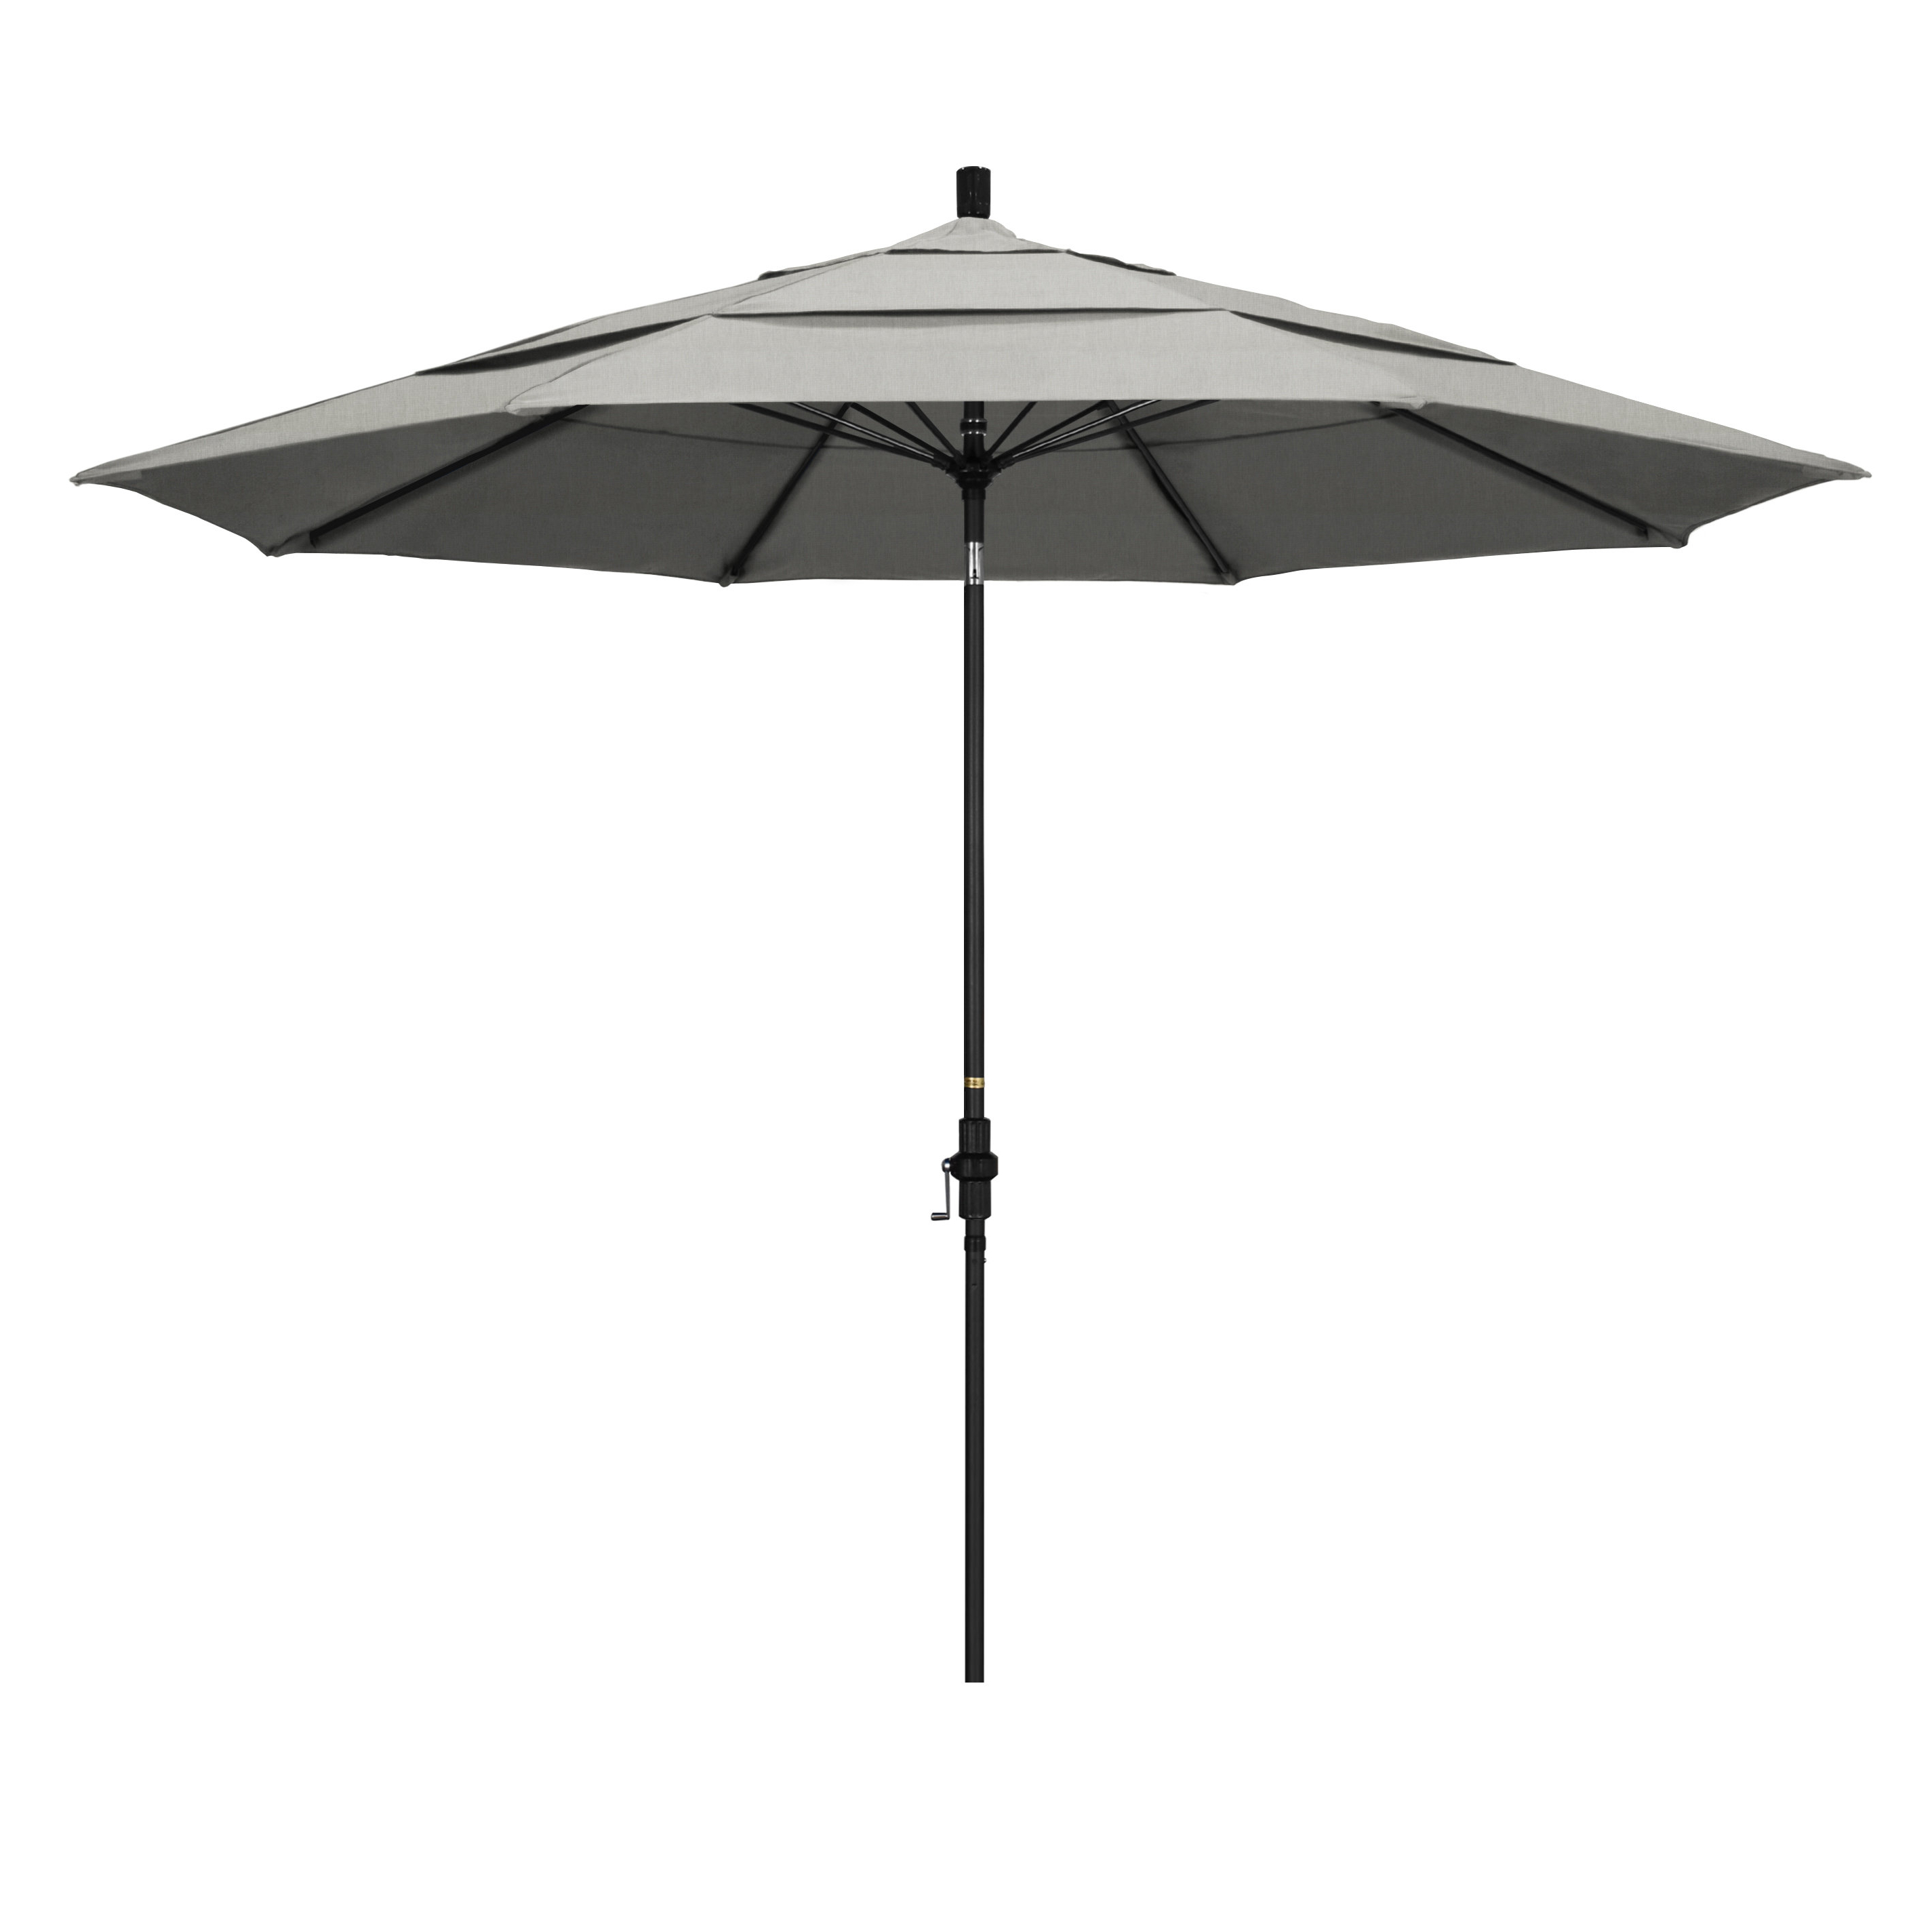 Hookton Crank Market Umbrellas Throughout Current Keegan 11' Market Umbrella & Reviews (View 6 of 20)